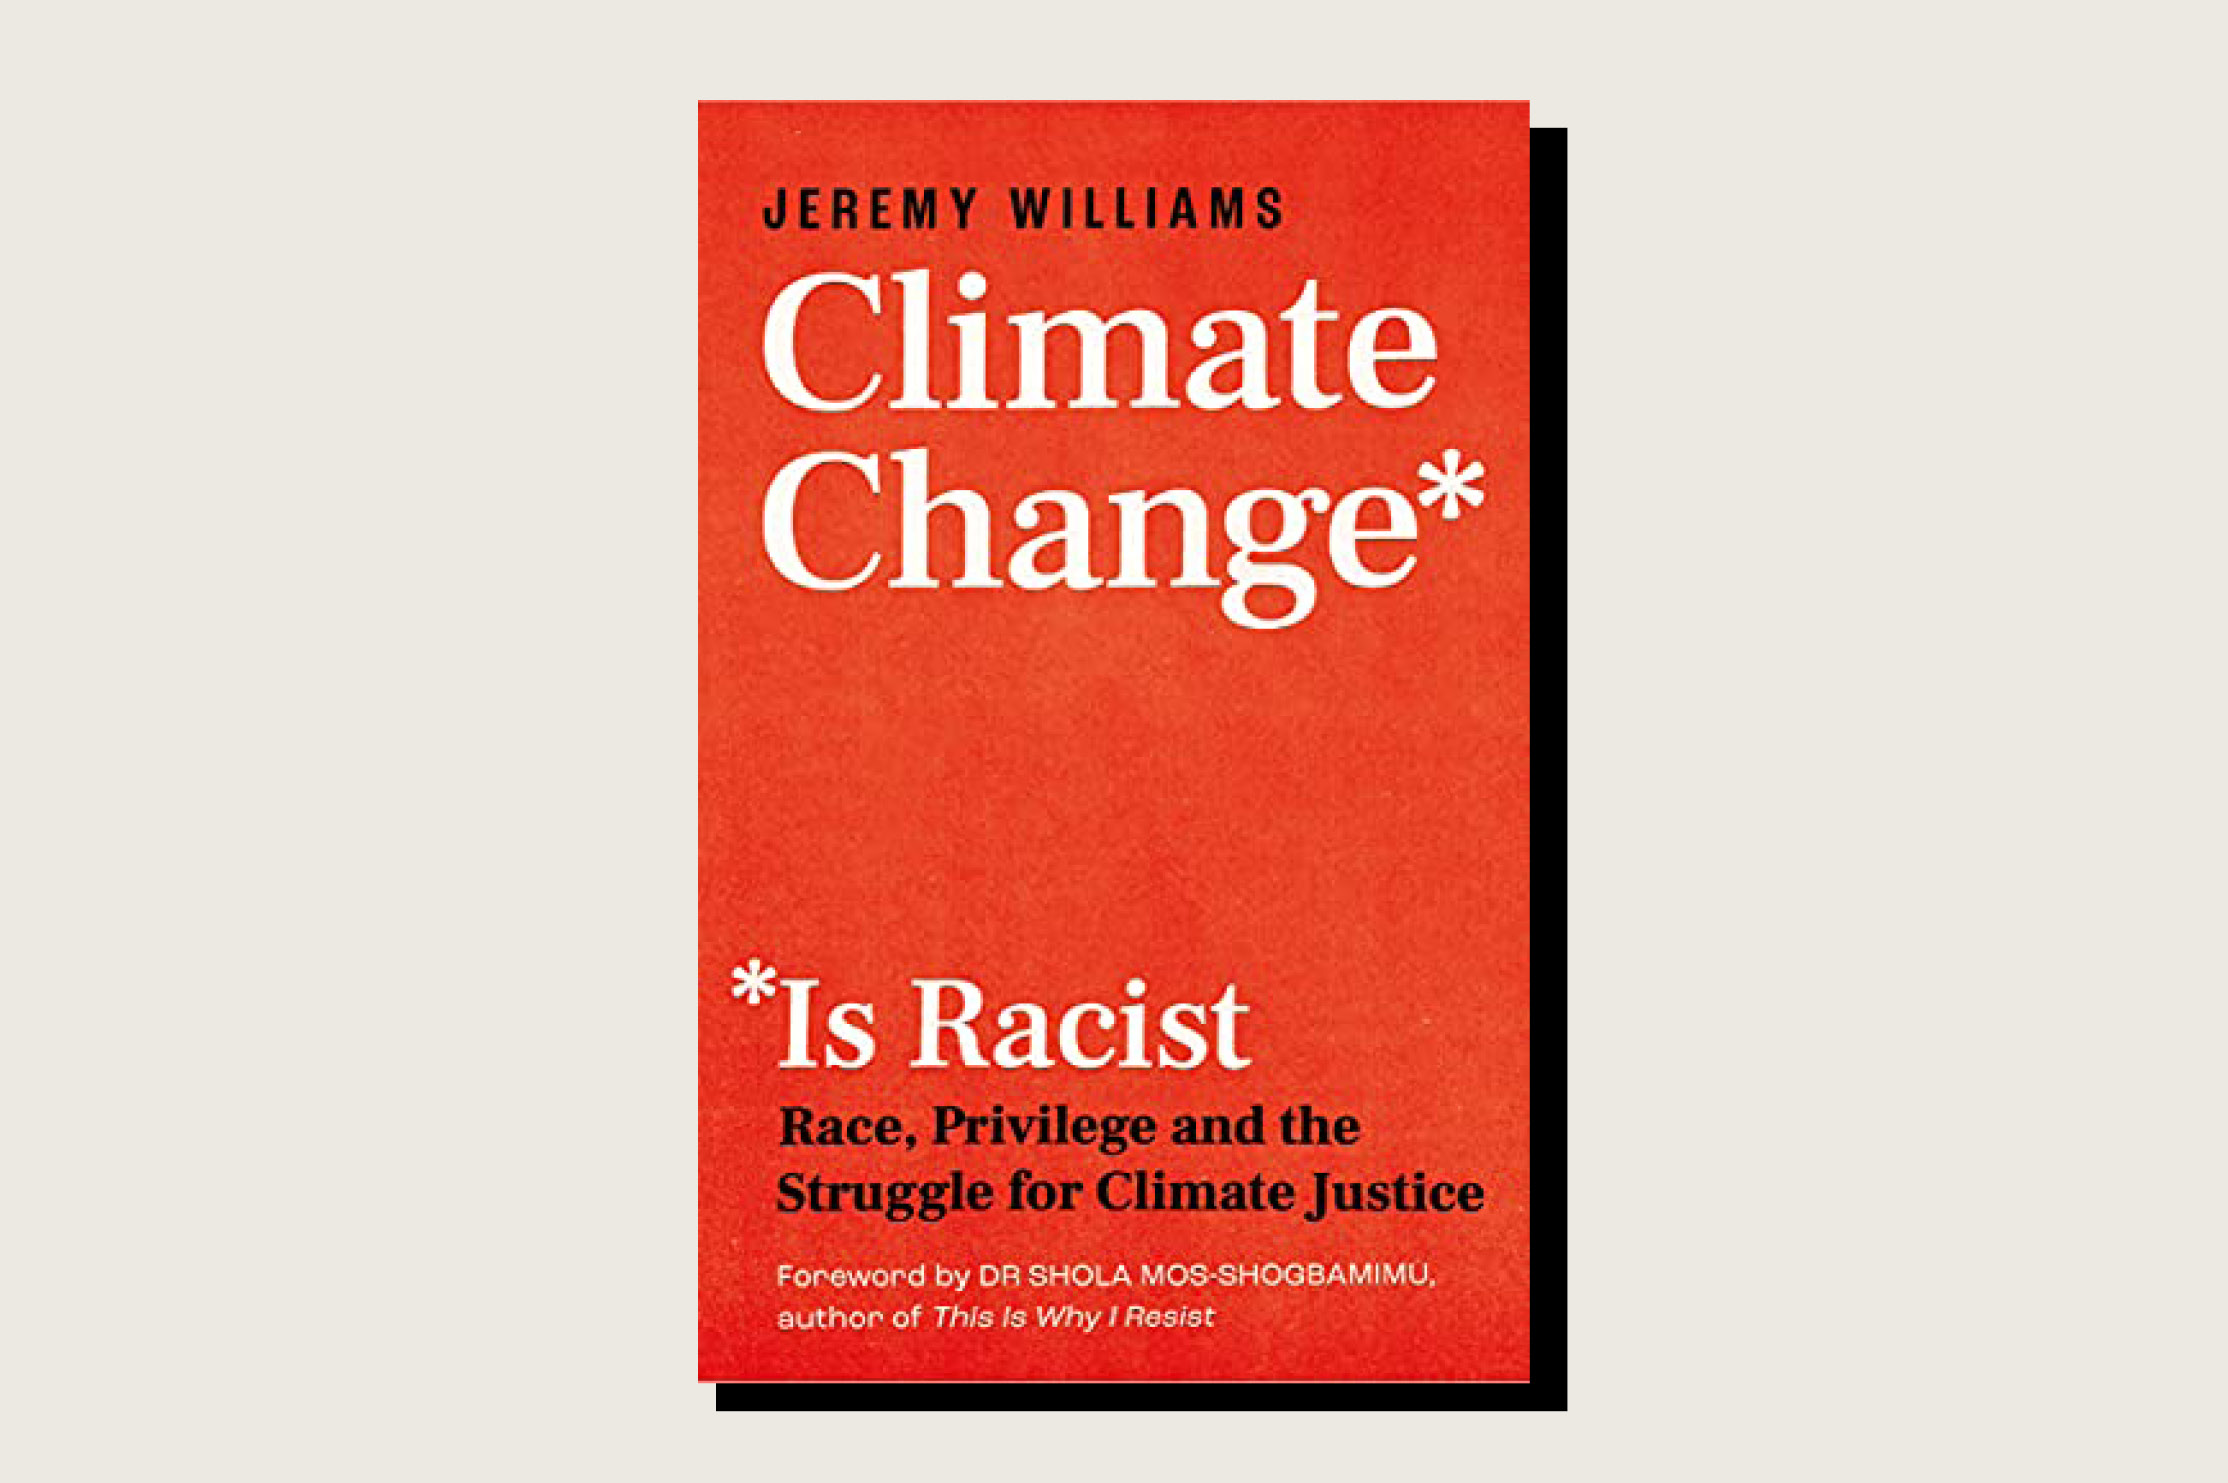 This article is adapted from Climate Change Is Racist: Race, Privilege, and the Struggle for Climate Justice by Jeremy Williams (Icon Books, 128 pp., .95, August 2021).